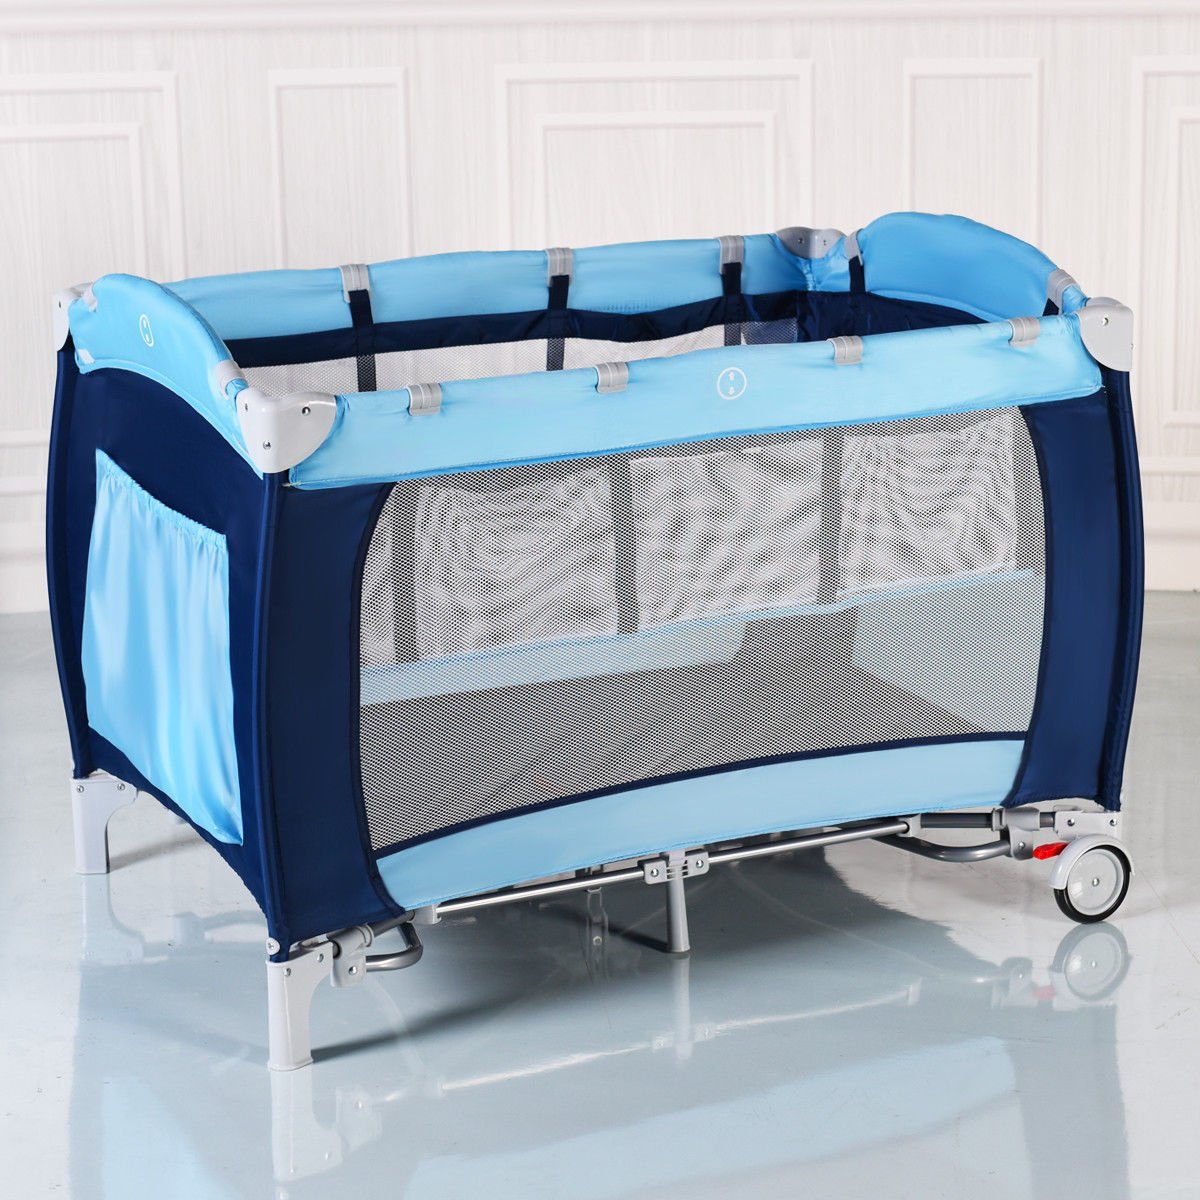 New Foldable Baby Crib Playpen Travel Infant Bassinet Bed Mosquito Net Music w Bag by Costway (Image #3)